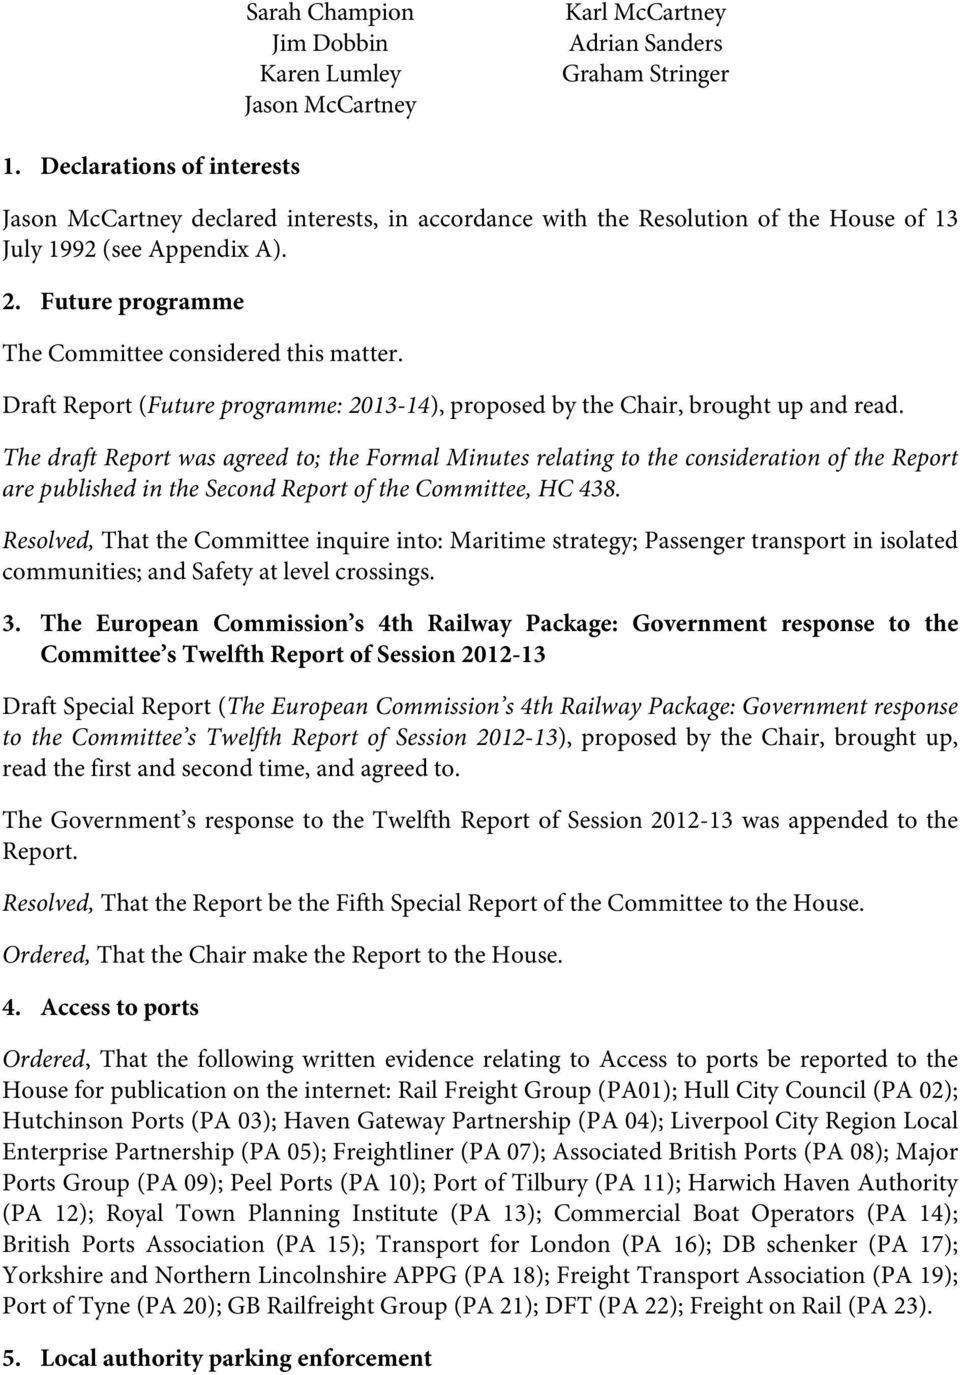 Future programme Draft Report (Future programme: 2013-14), proposed by the Chair, brought up and read.